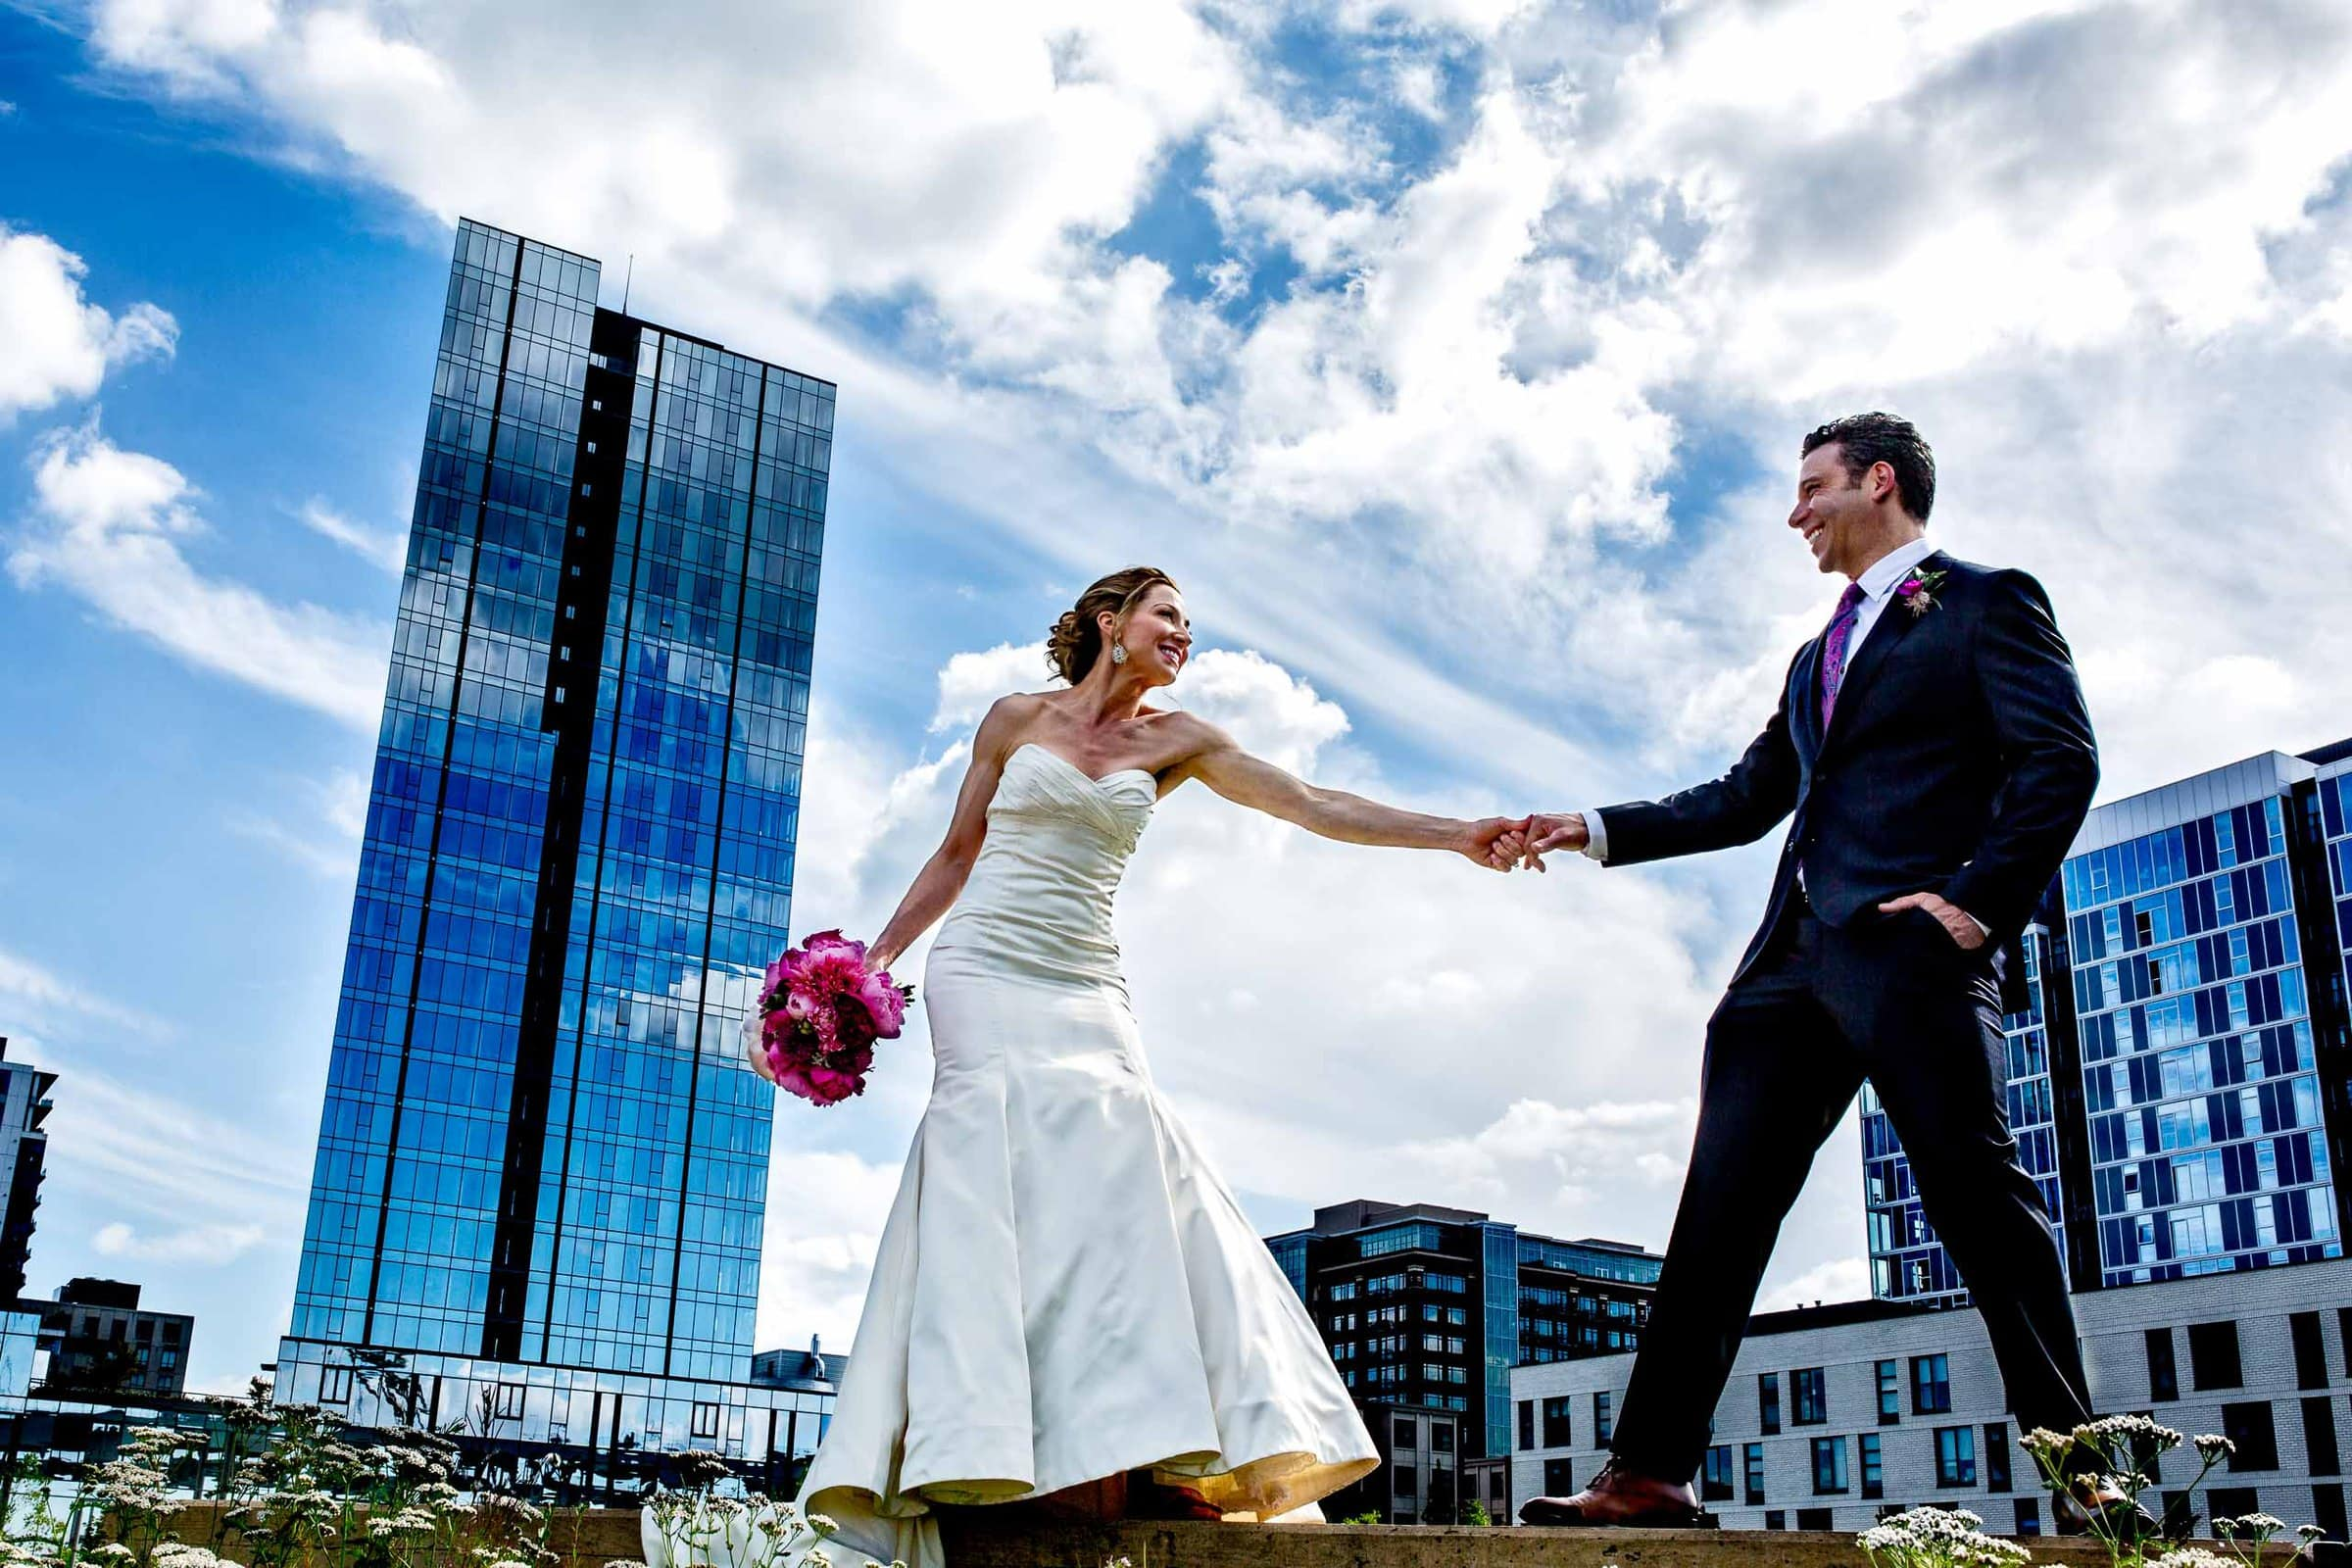 Wide angle perspective of bride and groom dancing in the city before their EcoTrust wedding in Portland, Oregon